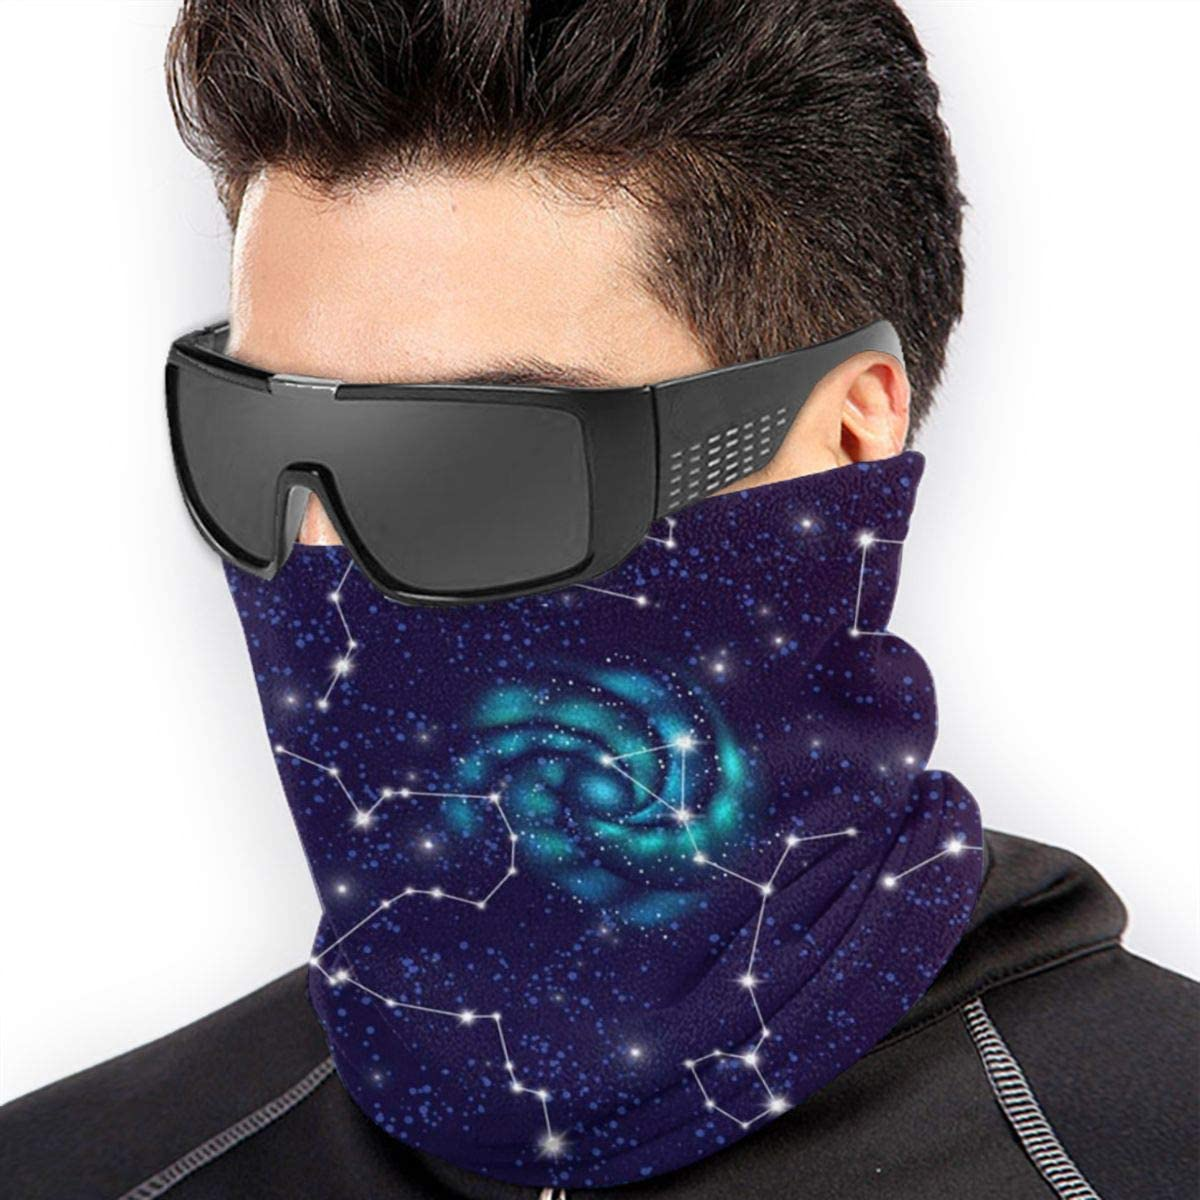 CLERO& Scarf Fleece Neck Warmer Space Constellations Windproof Winter Neck Gaiter Cold Weather Face Mask for Men Women